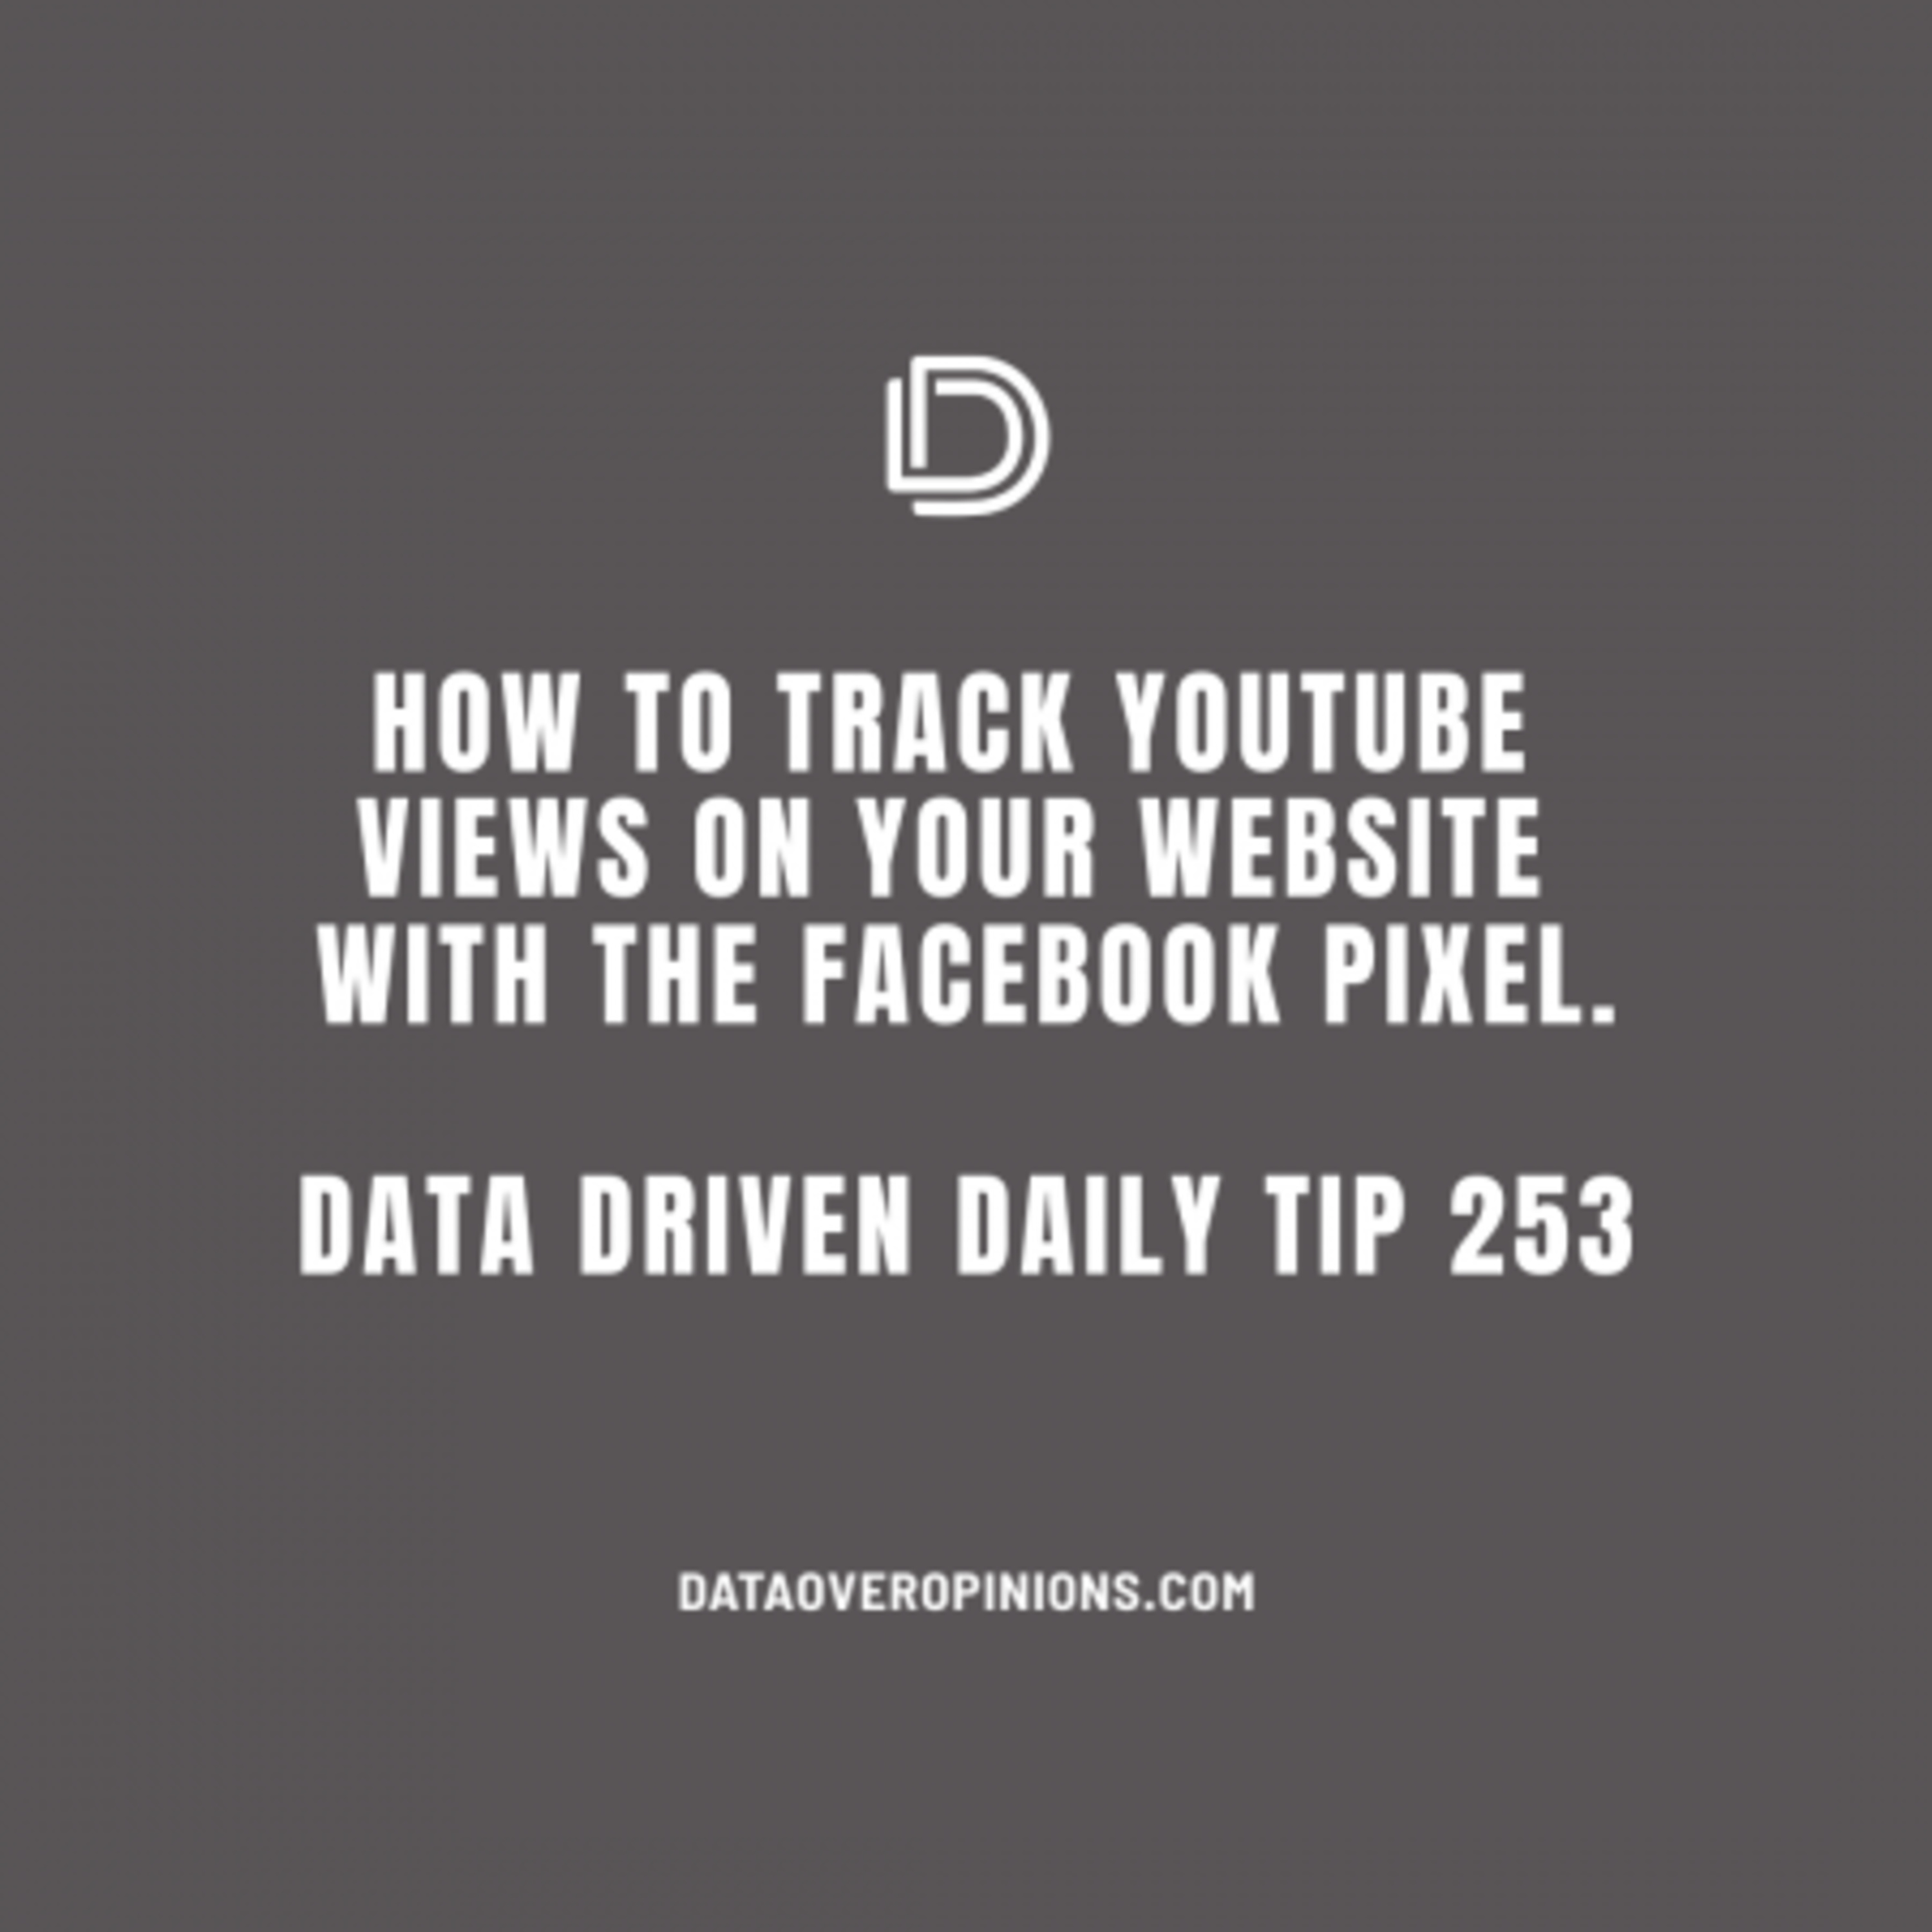 Ep.131: How To Track YouTube Views On Your Website With The Facebook Pixel - Data Driven Daily Tip 253